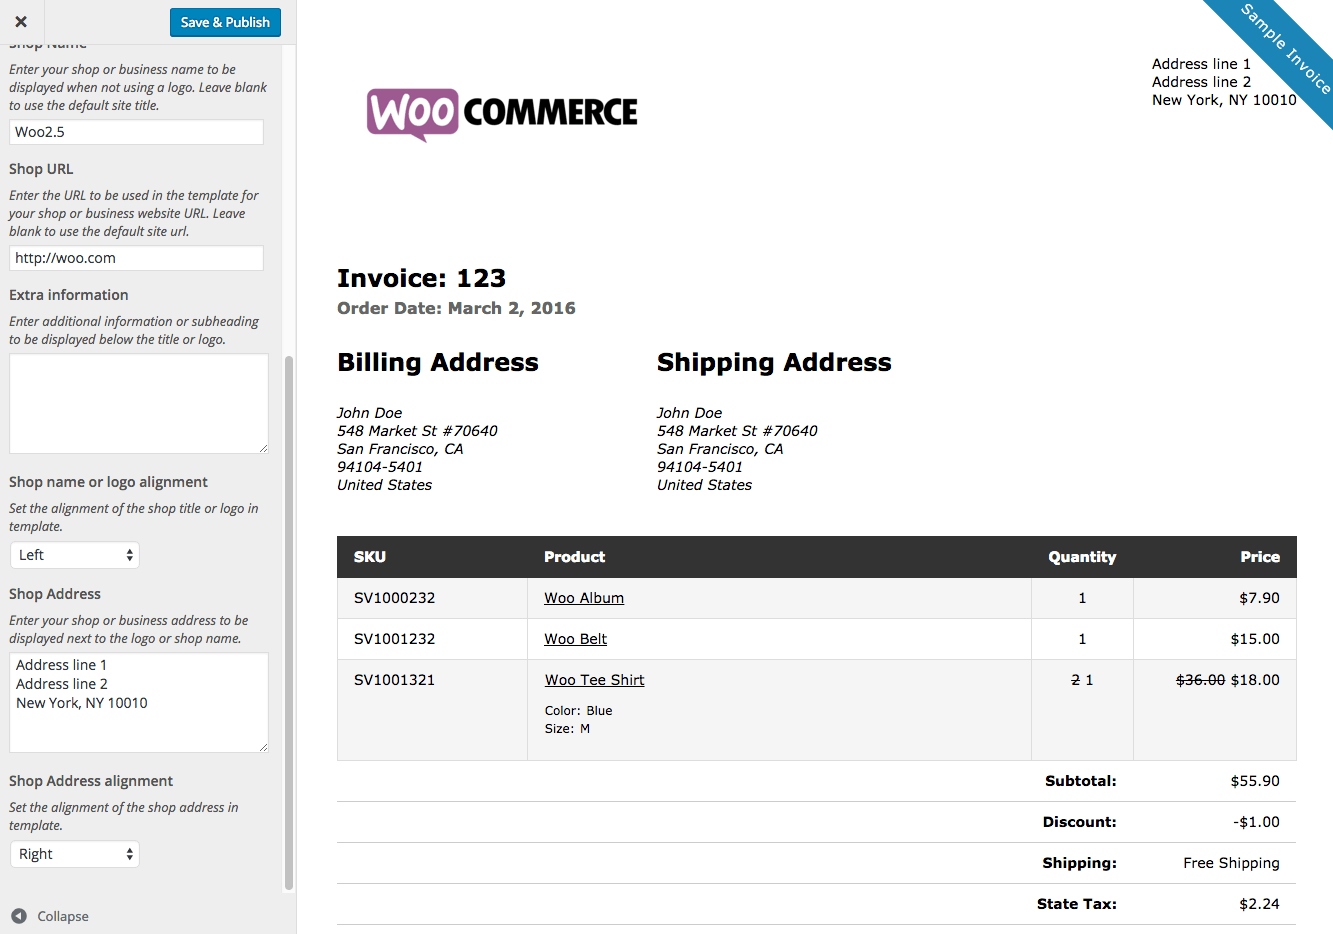 Usdgus  Prepossessing Woocommerce Print Invoices Amp Packing Lists  Woocommerce Docs With Excellent Woocommerce Print Invoices  Packing Lists Customizer With Charming Cash Receipt Acknowledgement Letter Also Digital Receipts System In Addition School Receipt Template And Receipts Examples As Well As Sample Receipt Pdf Additionally Print Rent Receipt From Docswoocommercecom With Usdgus  Excellent Woocommerce Print Invoices Amp Packing Lists  Woocommerce Docs With Charming Woocommerce Print Invoices  Packing Lists Customizer And Prepossessing Cash Receipt Acknowledgement Letter Also Digital Receipts System In Addition School Receipt Template From Docswoocommercecom